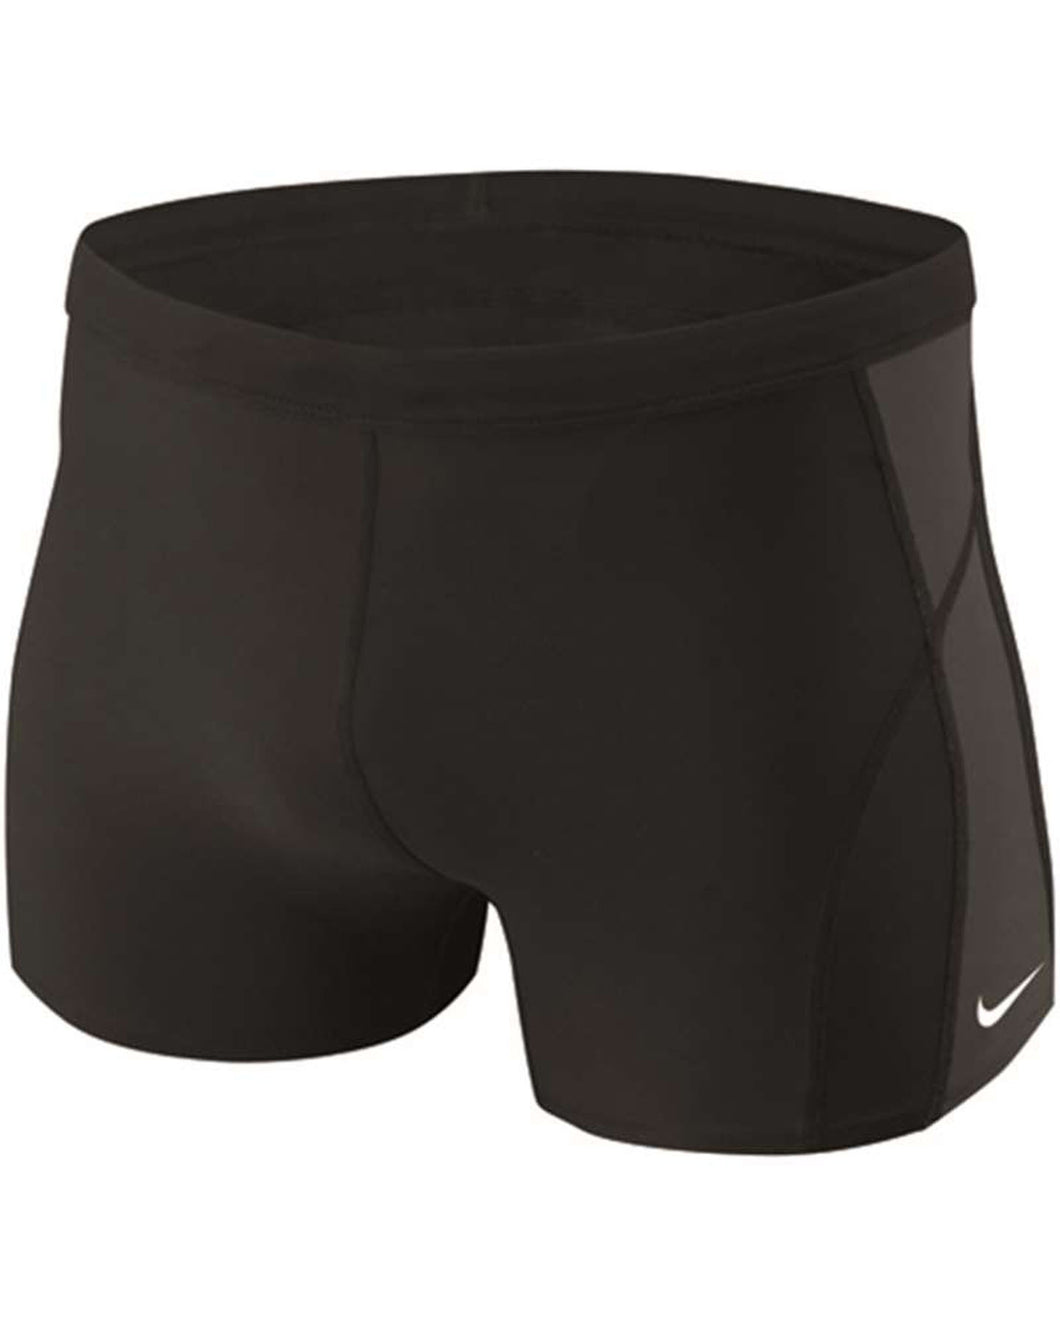 Nike Swim Men's Team Poly Square Leg